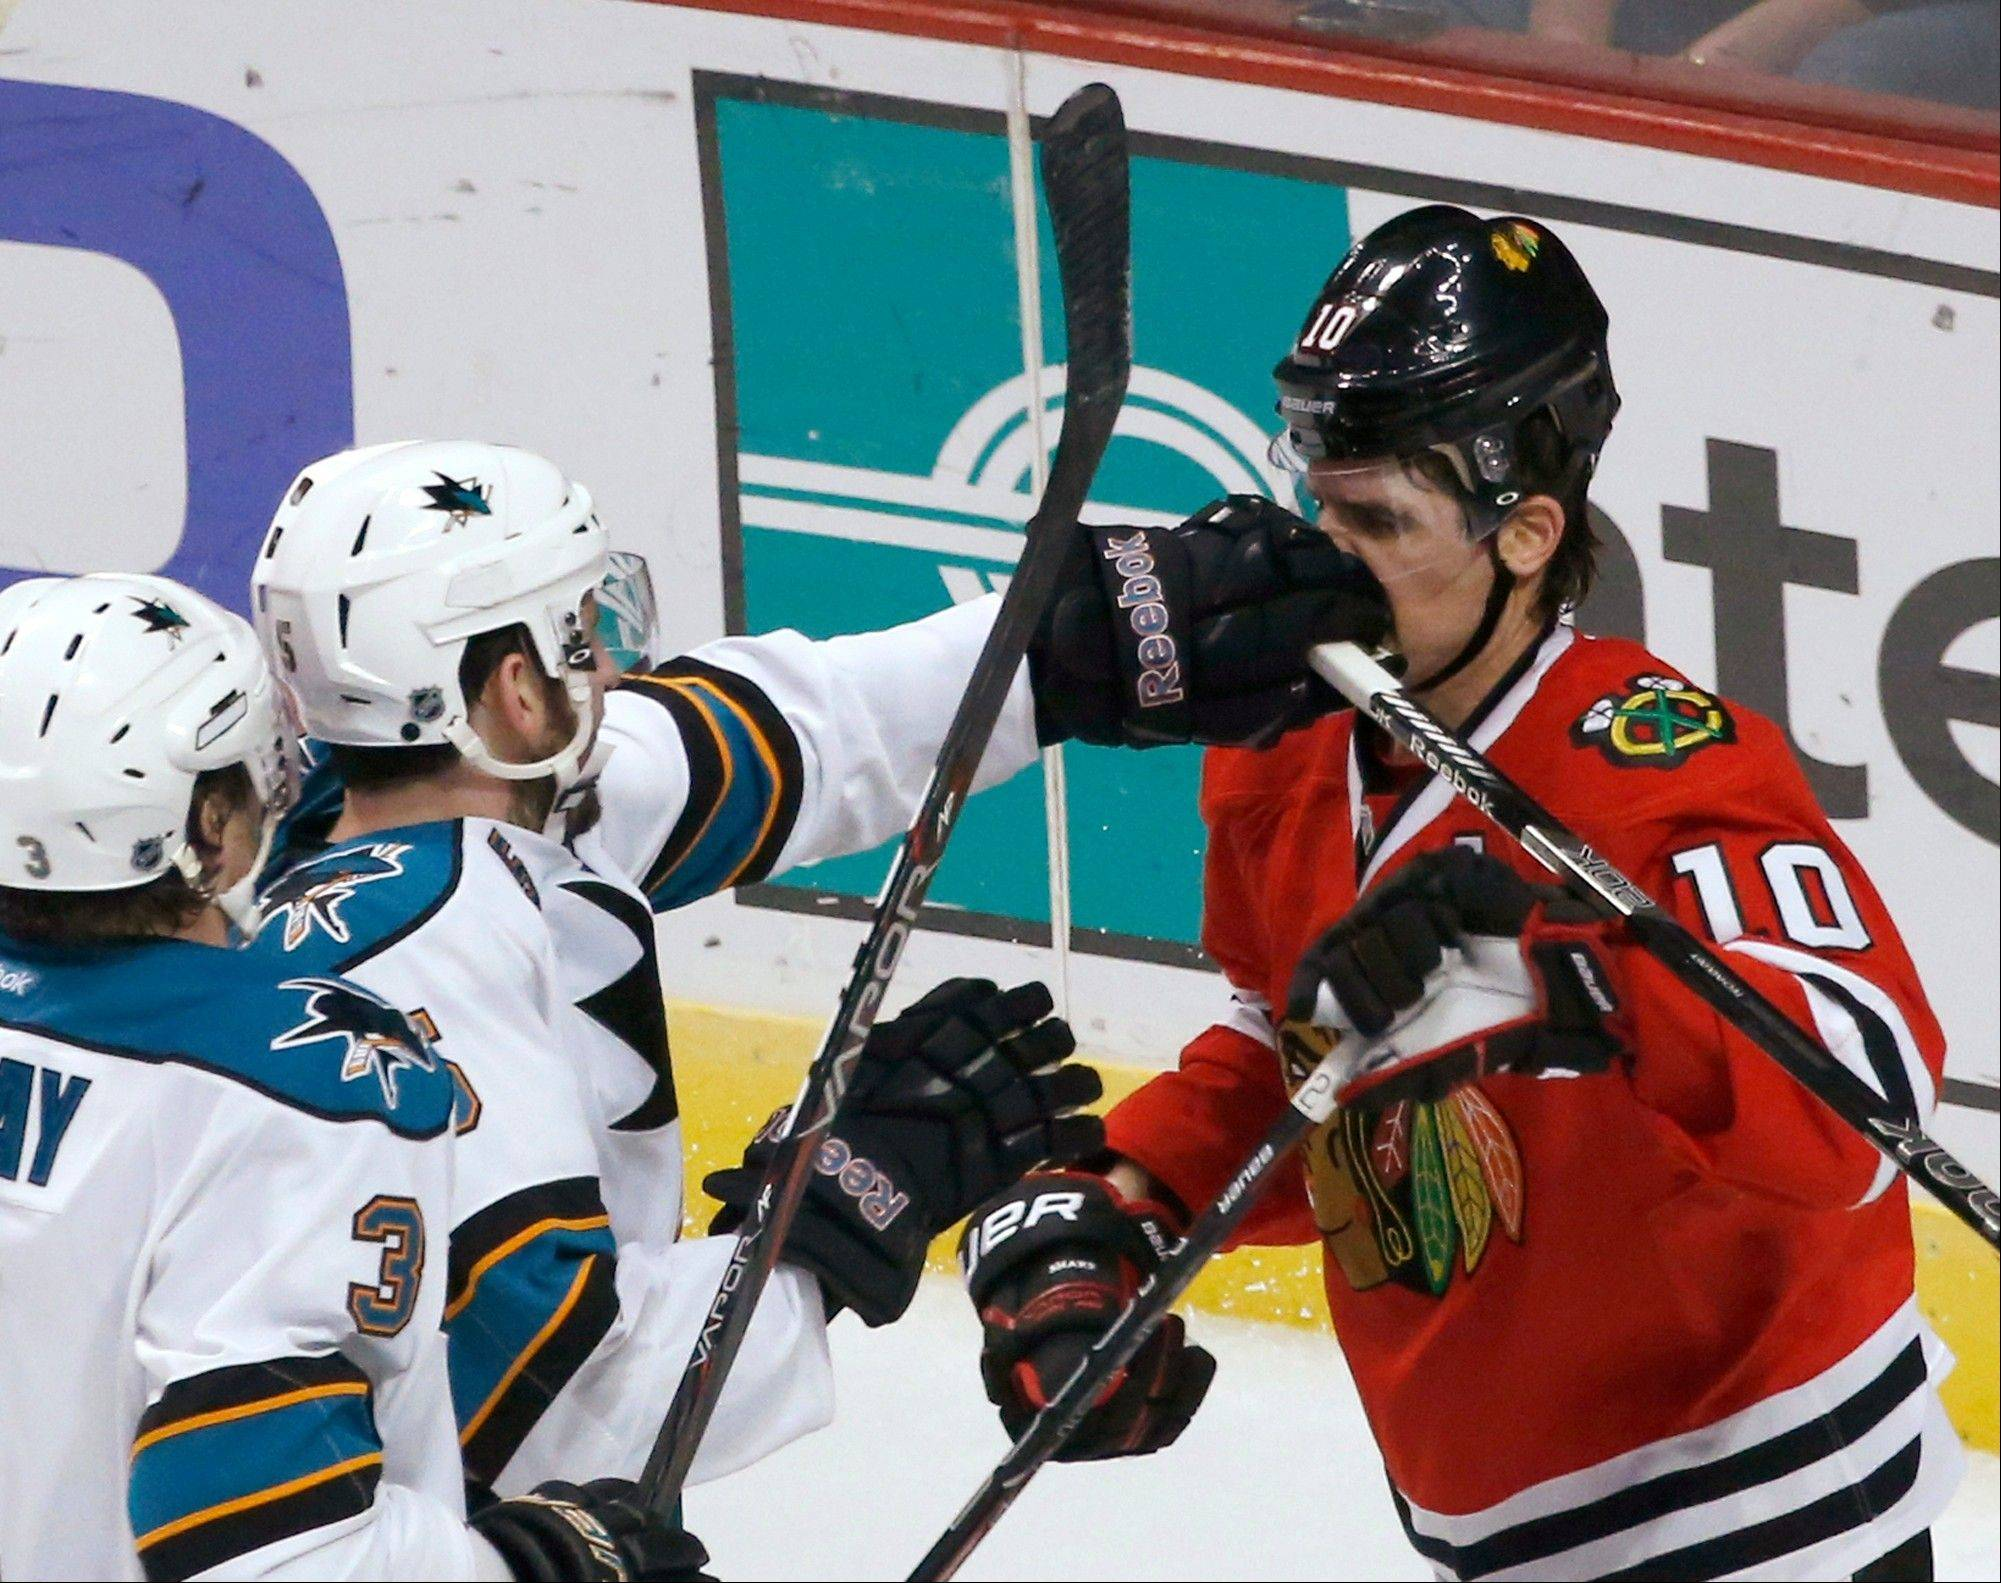 San Jose Sharks defenseman Jason Demers (5) take a jab at Chicago Blackhawks center Patrick Sharp (10) as Douglas Murray (3) watches during the second period Friday.